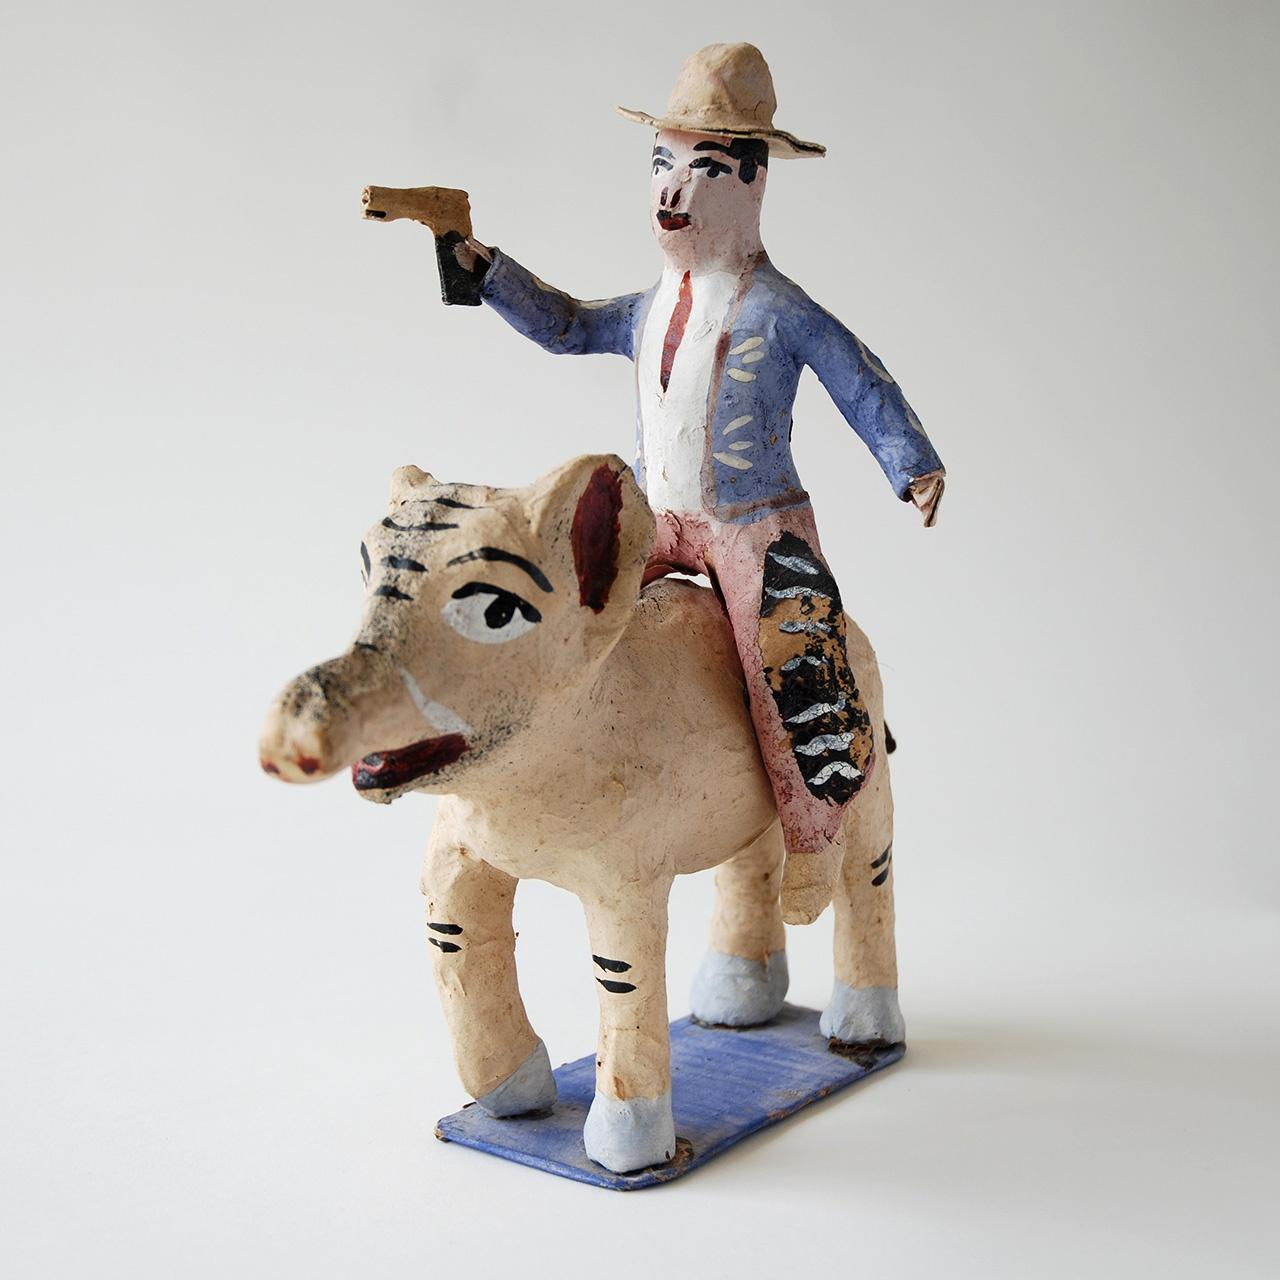 """Objects, Borders and Neighbors Unknown artist, """"Paper mache"""", Papier-mache, paint, Jim and Veralee Bassler Collection"""